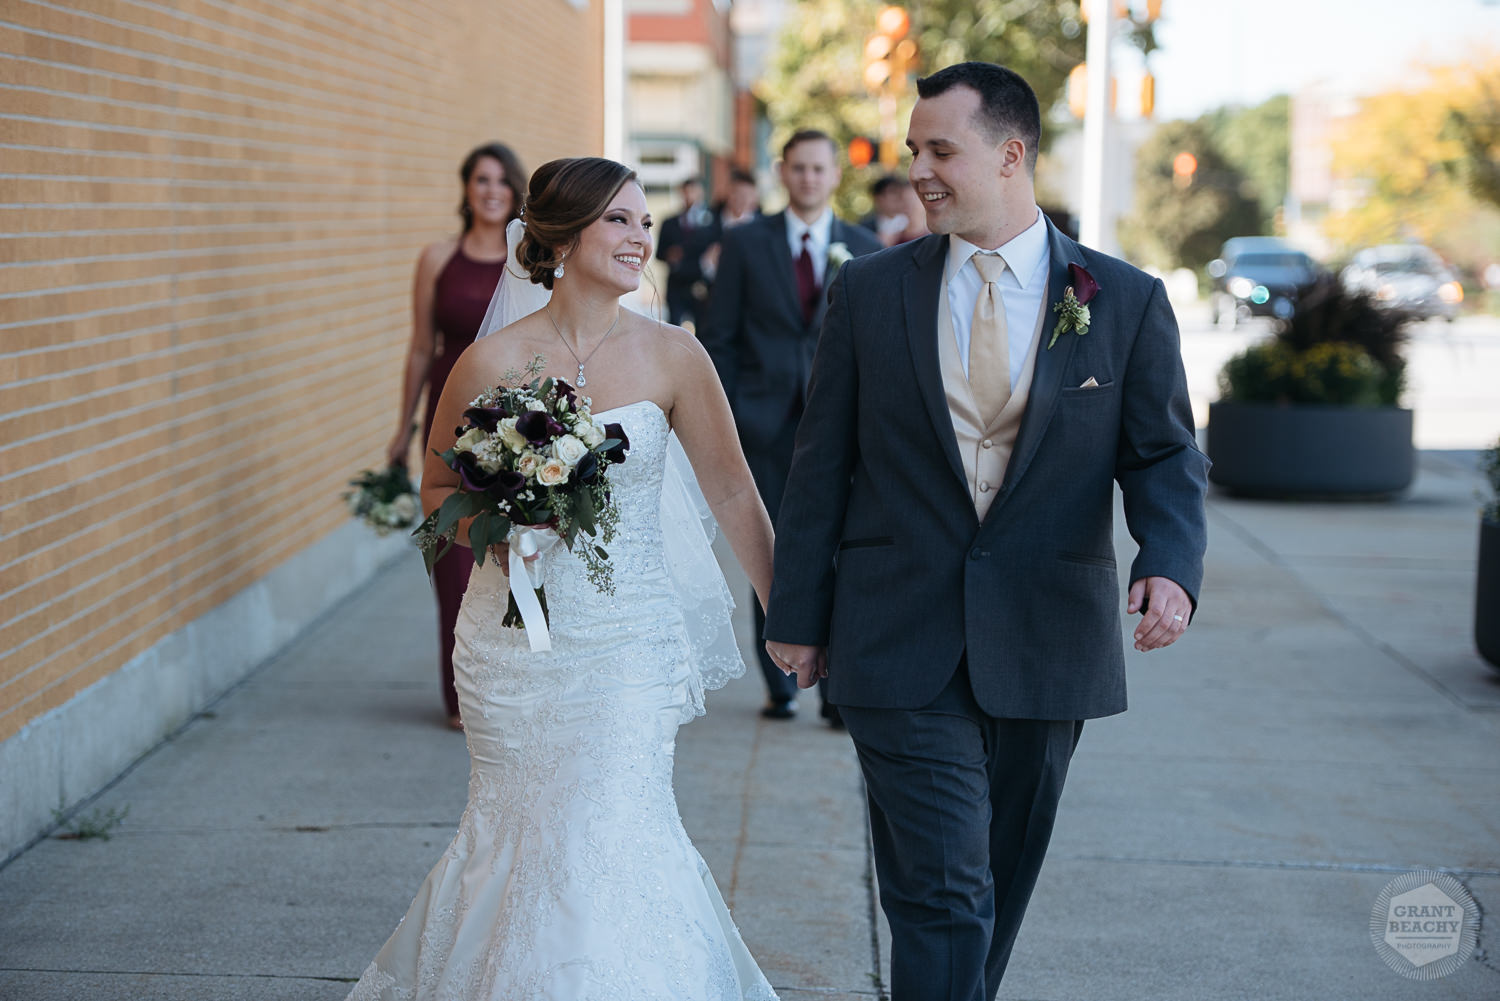 Grant Beachy wedding photographer, south bend, elkhart, chicago-20.jpg